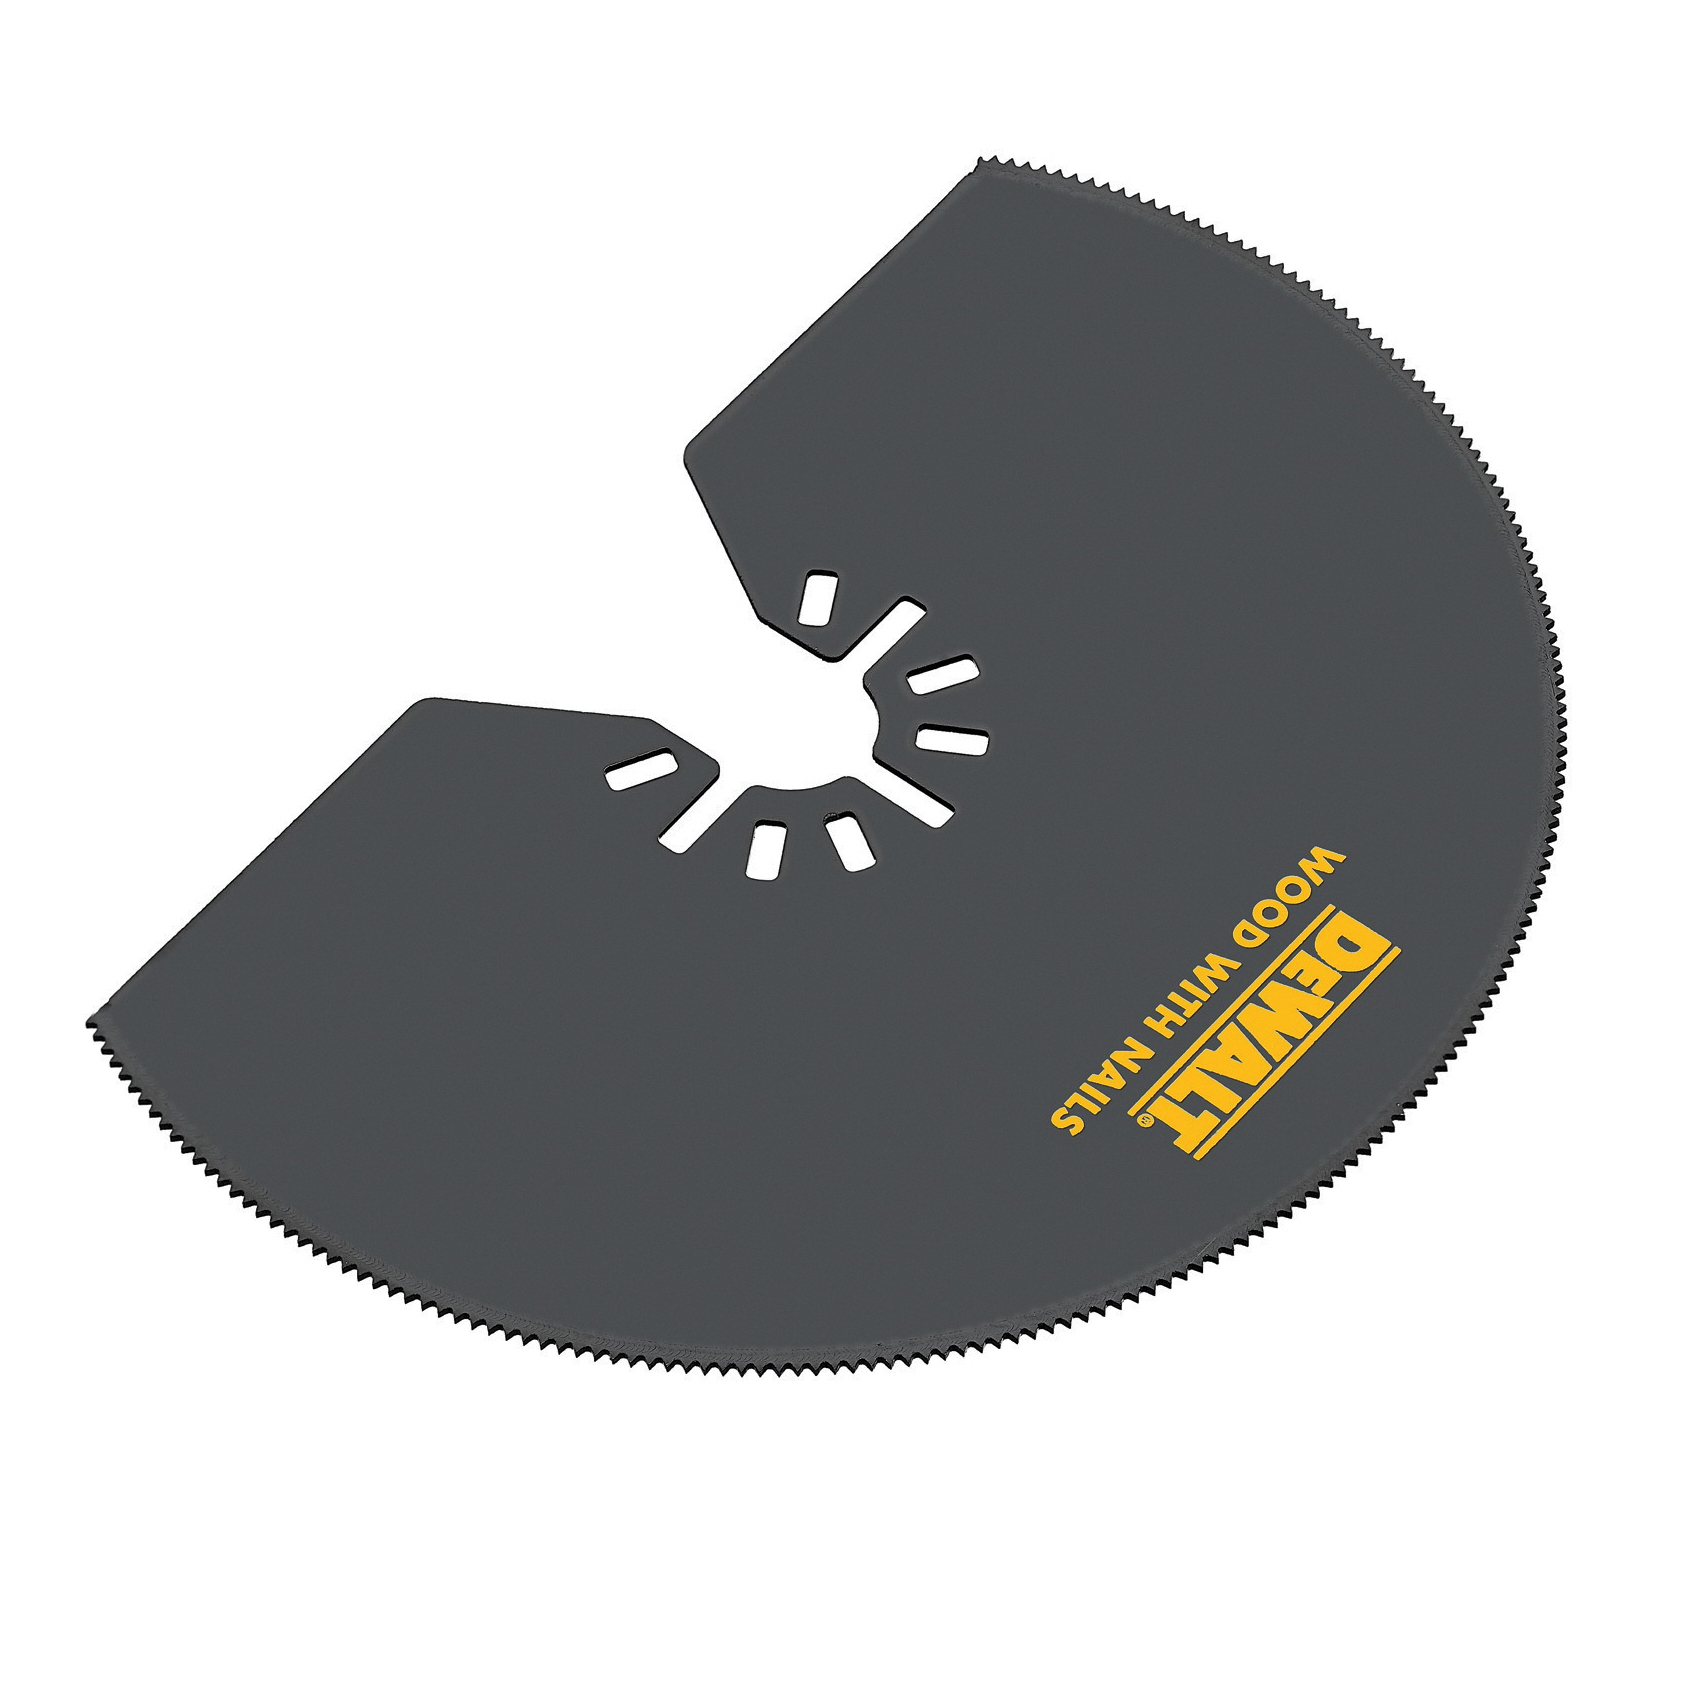 DeWALT® DWA4210 Oscillating Blade, For Use With All Oscillating Tool, 4 in, HSS